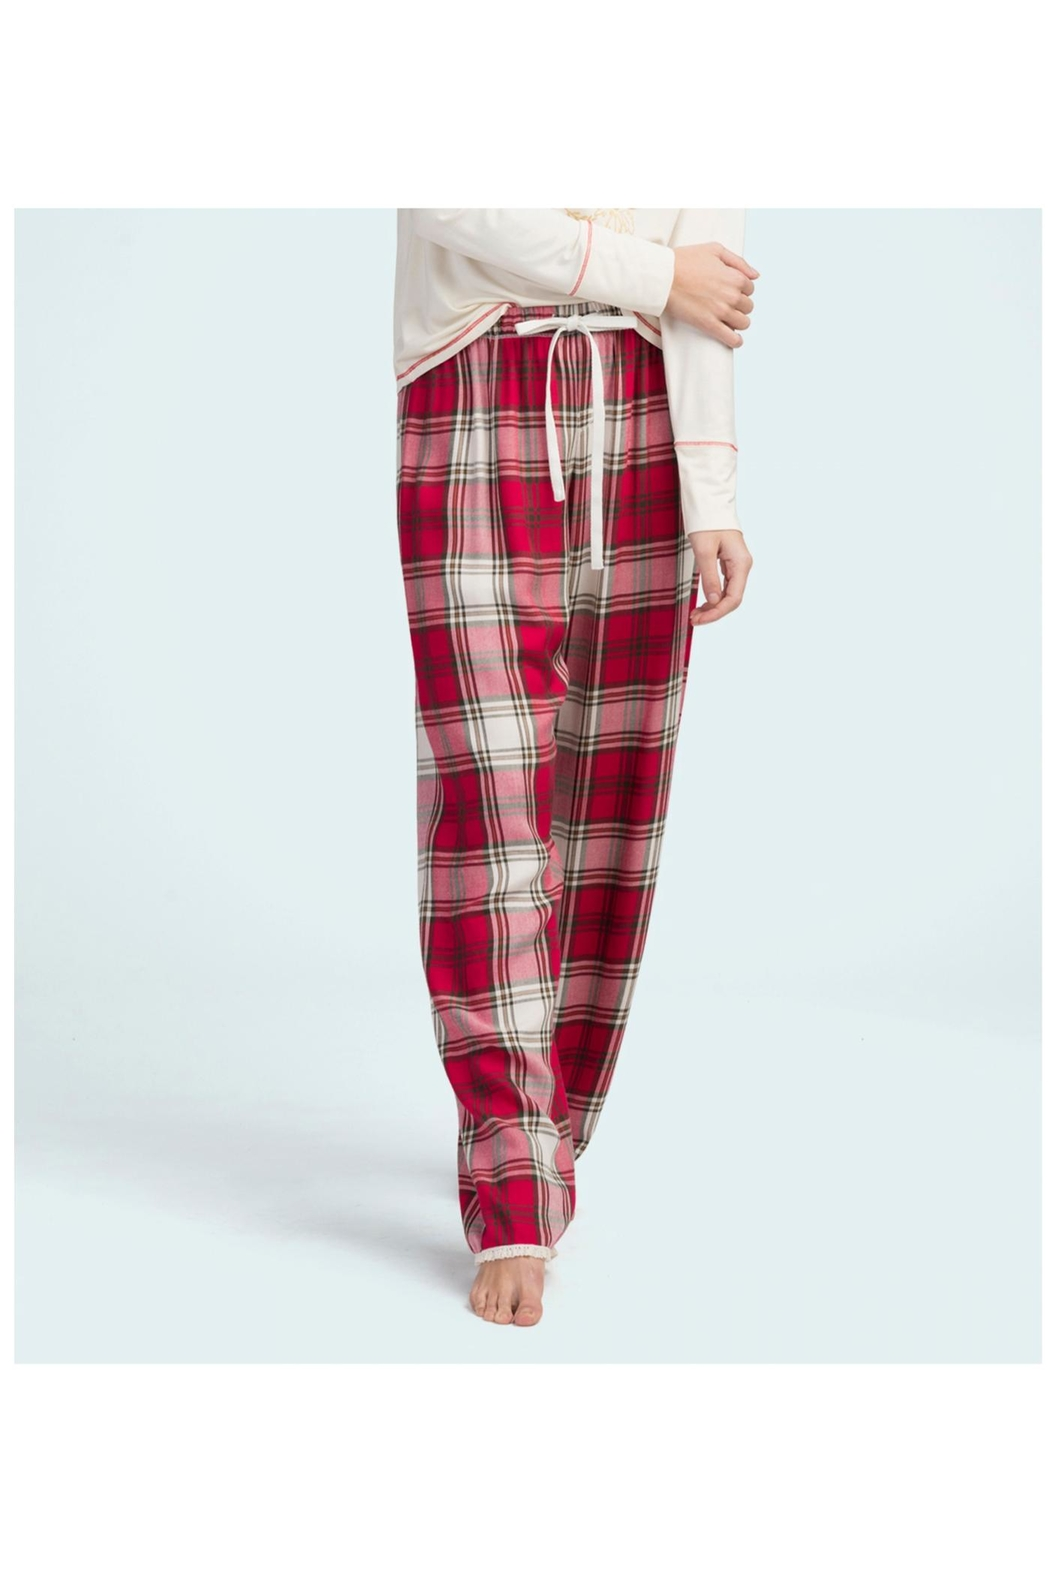 Hatley Christmas Plaid Pjpant - Main Image